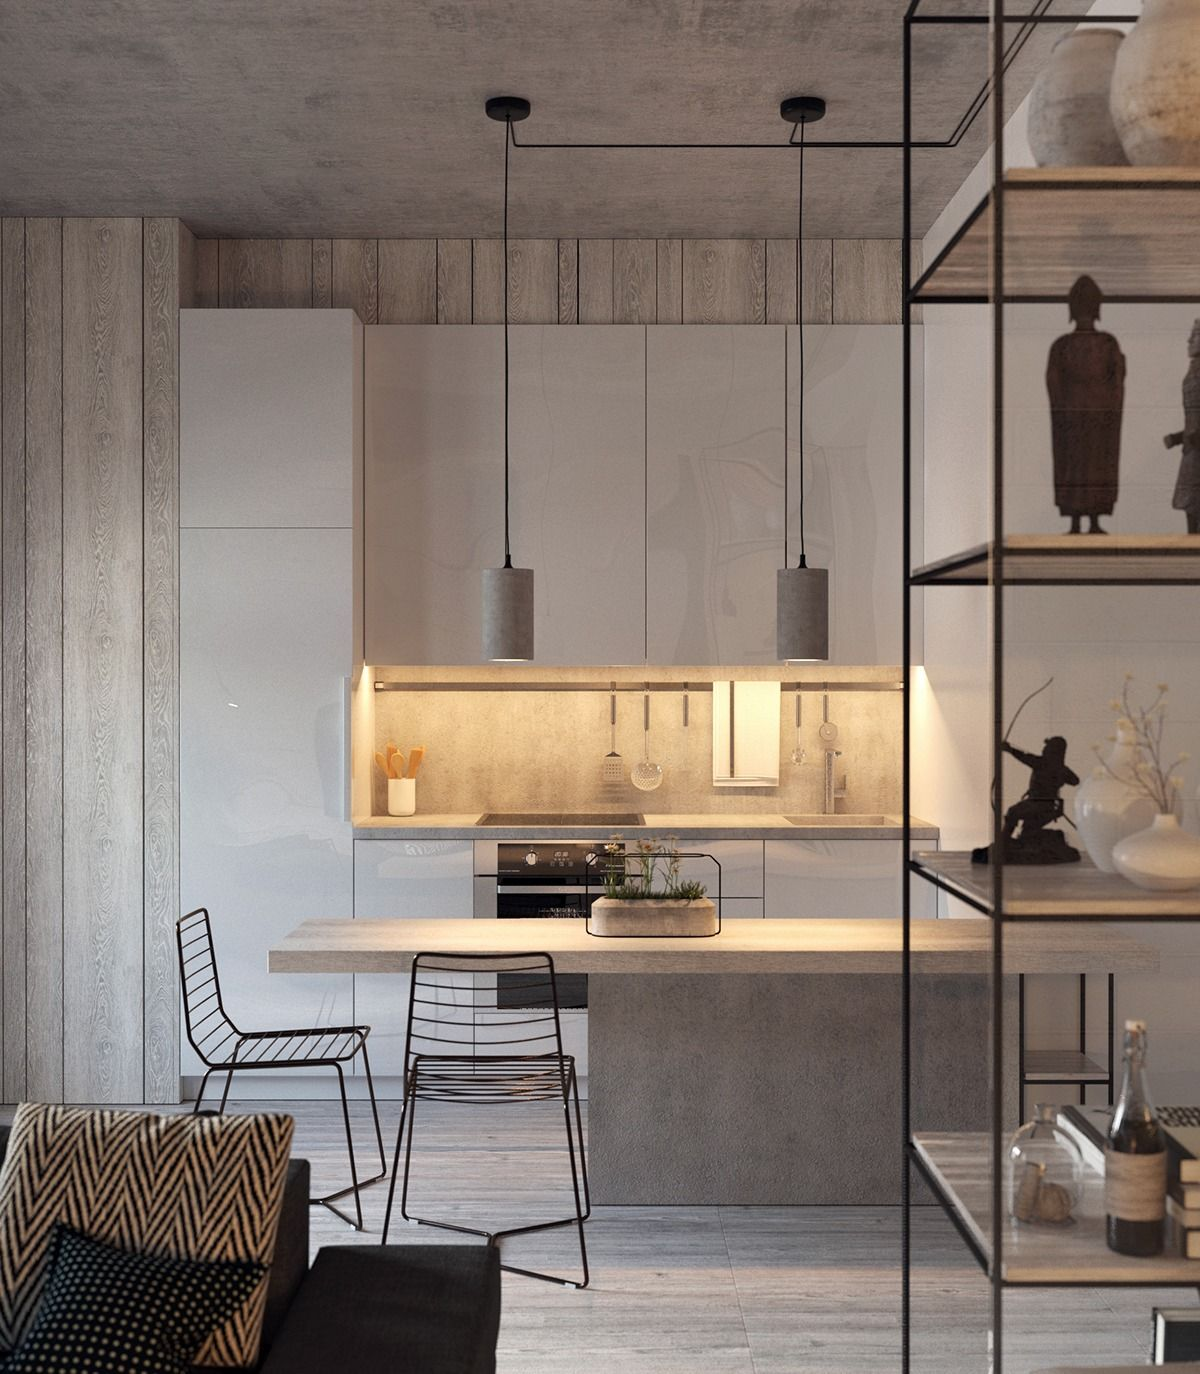 Small Home Designs Under 50 Square Meters Small Modern Kitchens Small House Design Modern Kitchen Design